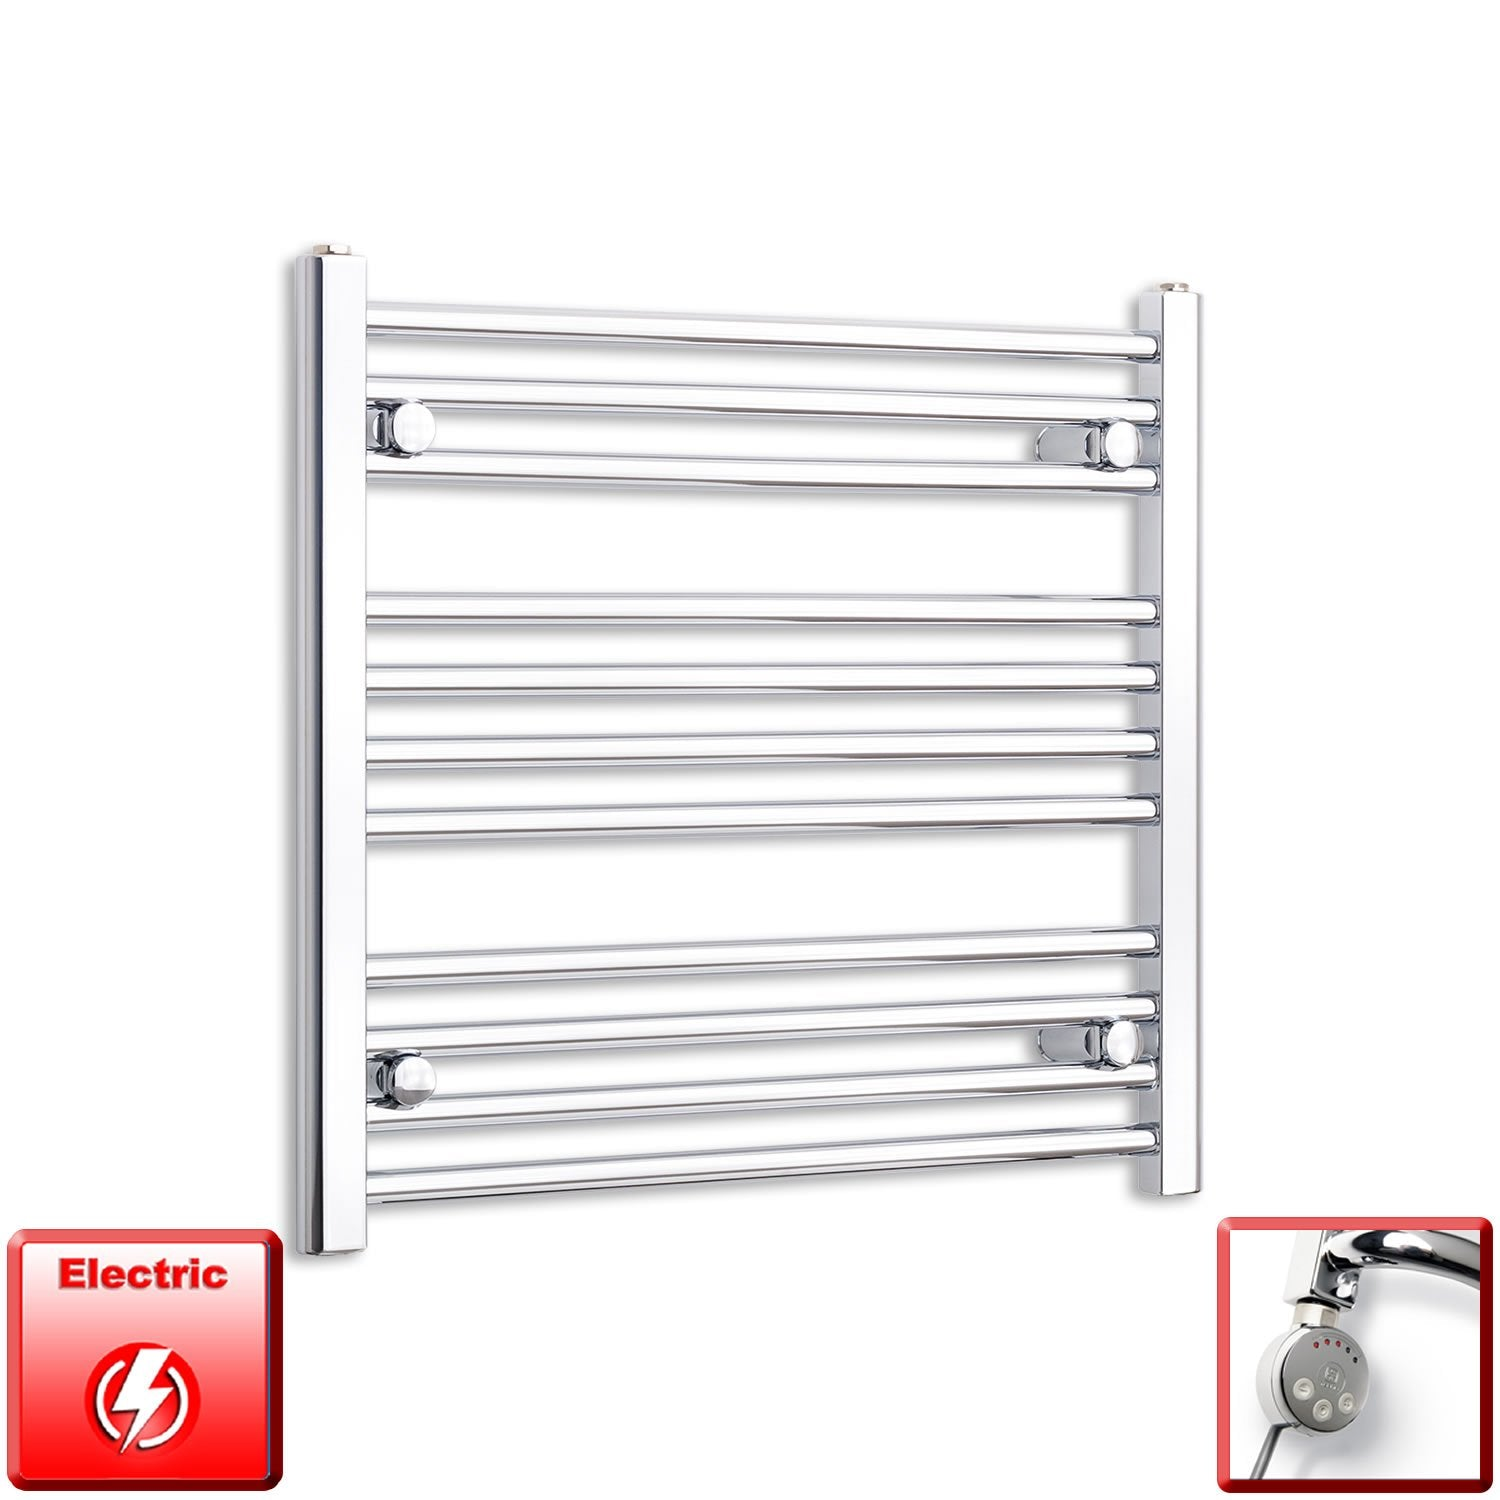 650mm Wide 600mm High Flat Chrome Pre-Filled Electric Heated Towel Rail Radiator HTR,MEG Thermostatic Element